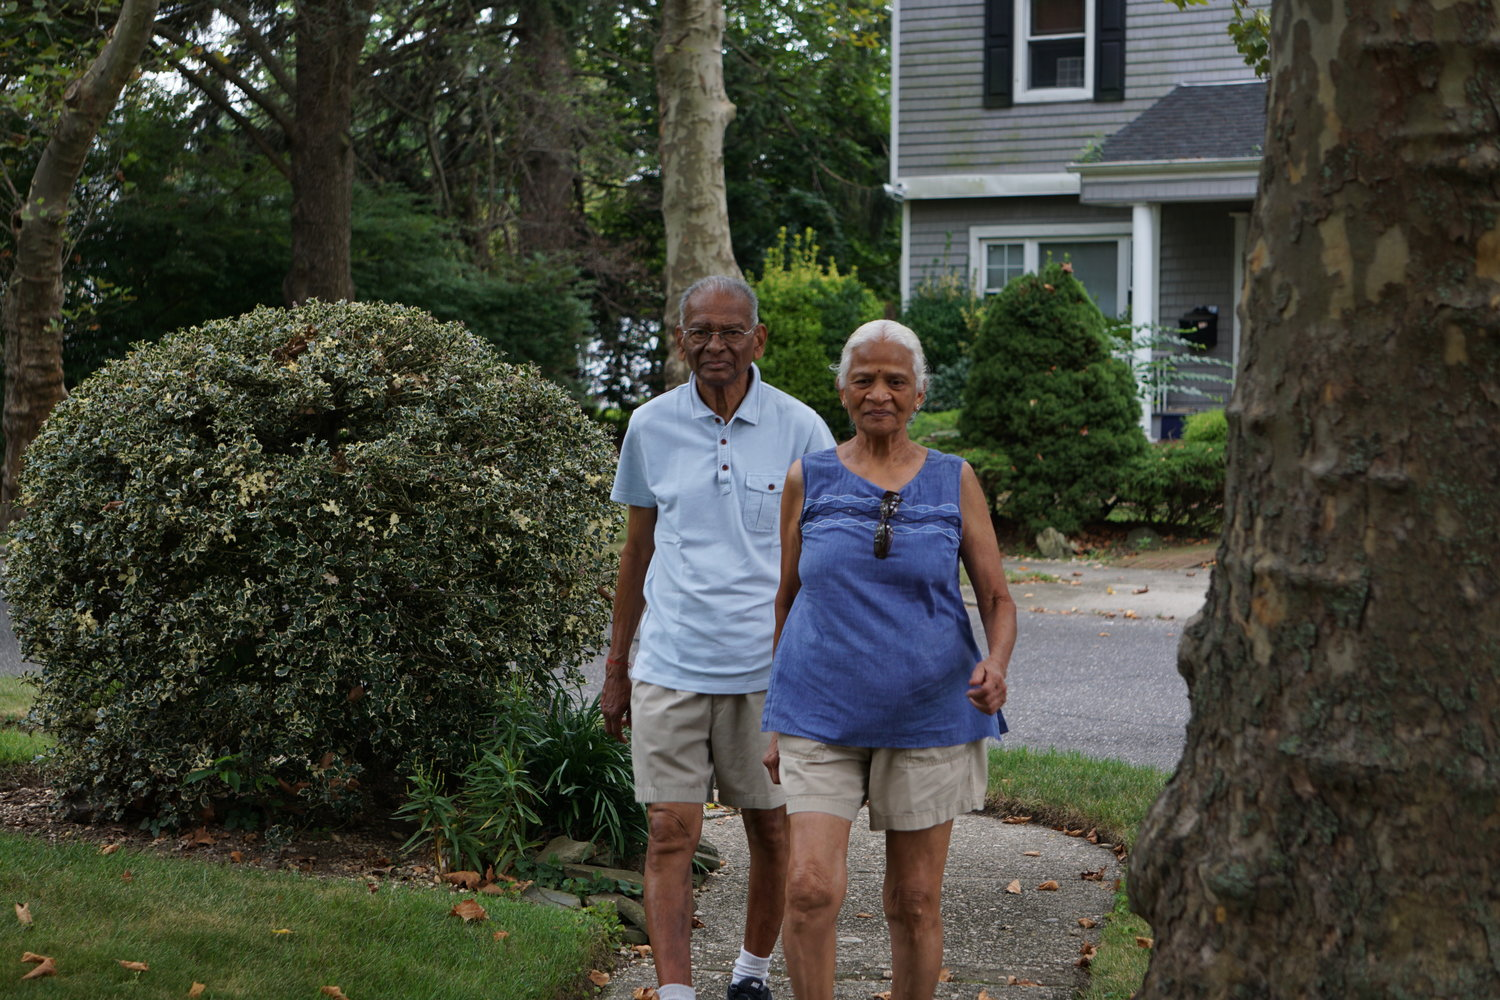 Anirudh Shah, 85, and Subhadra Shah, 80, walk 10,000 steps per day in East Rockaway.